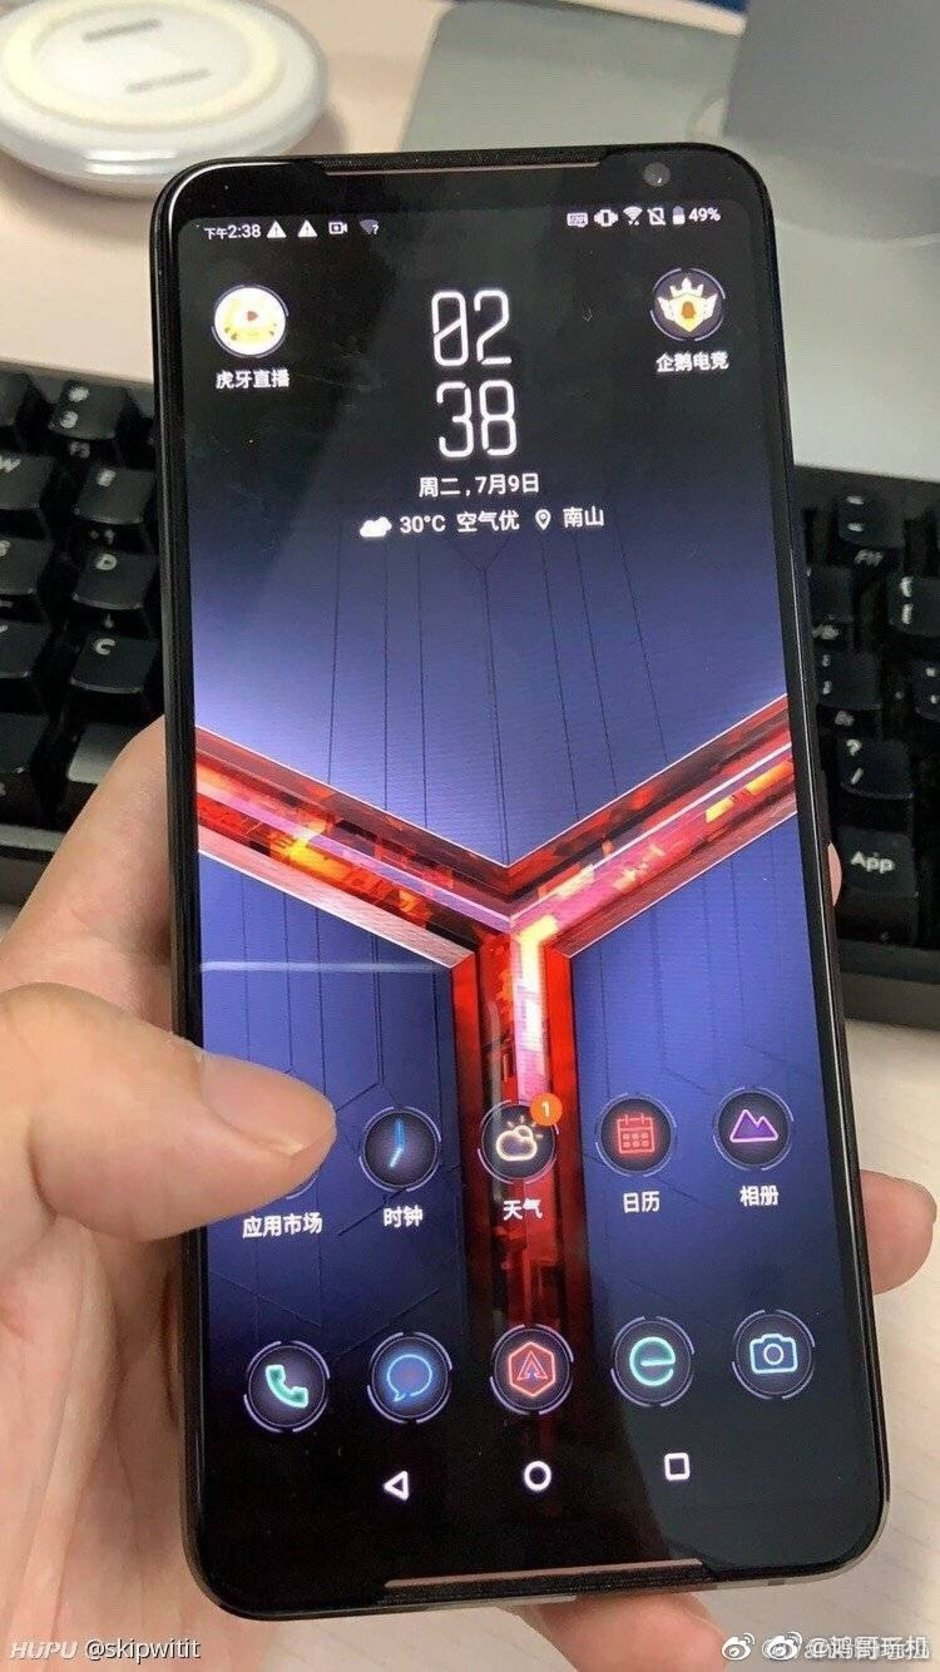 Leaked photos allegedly showing the Asus ROG Phone II